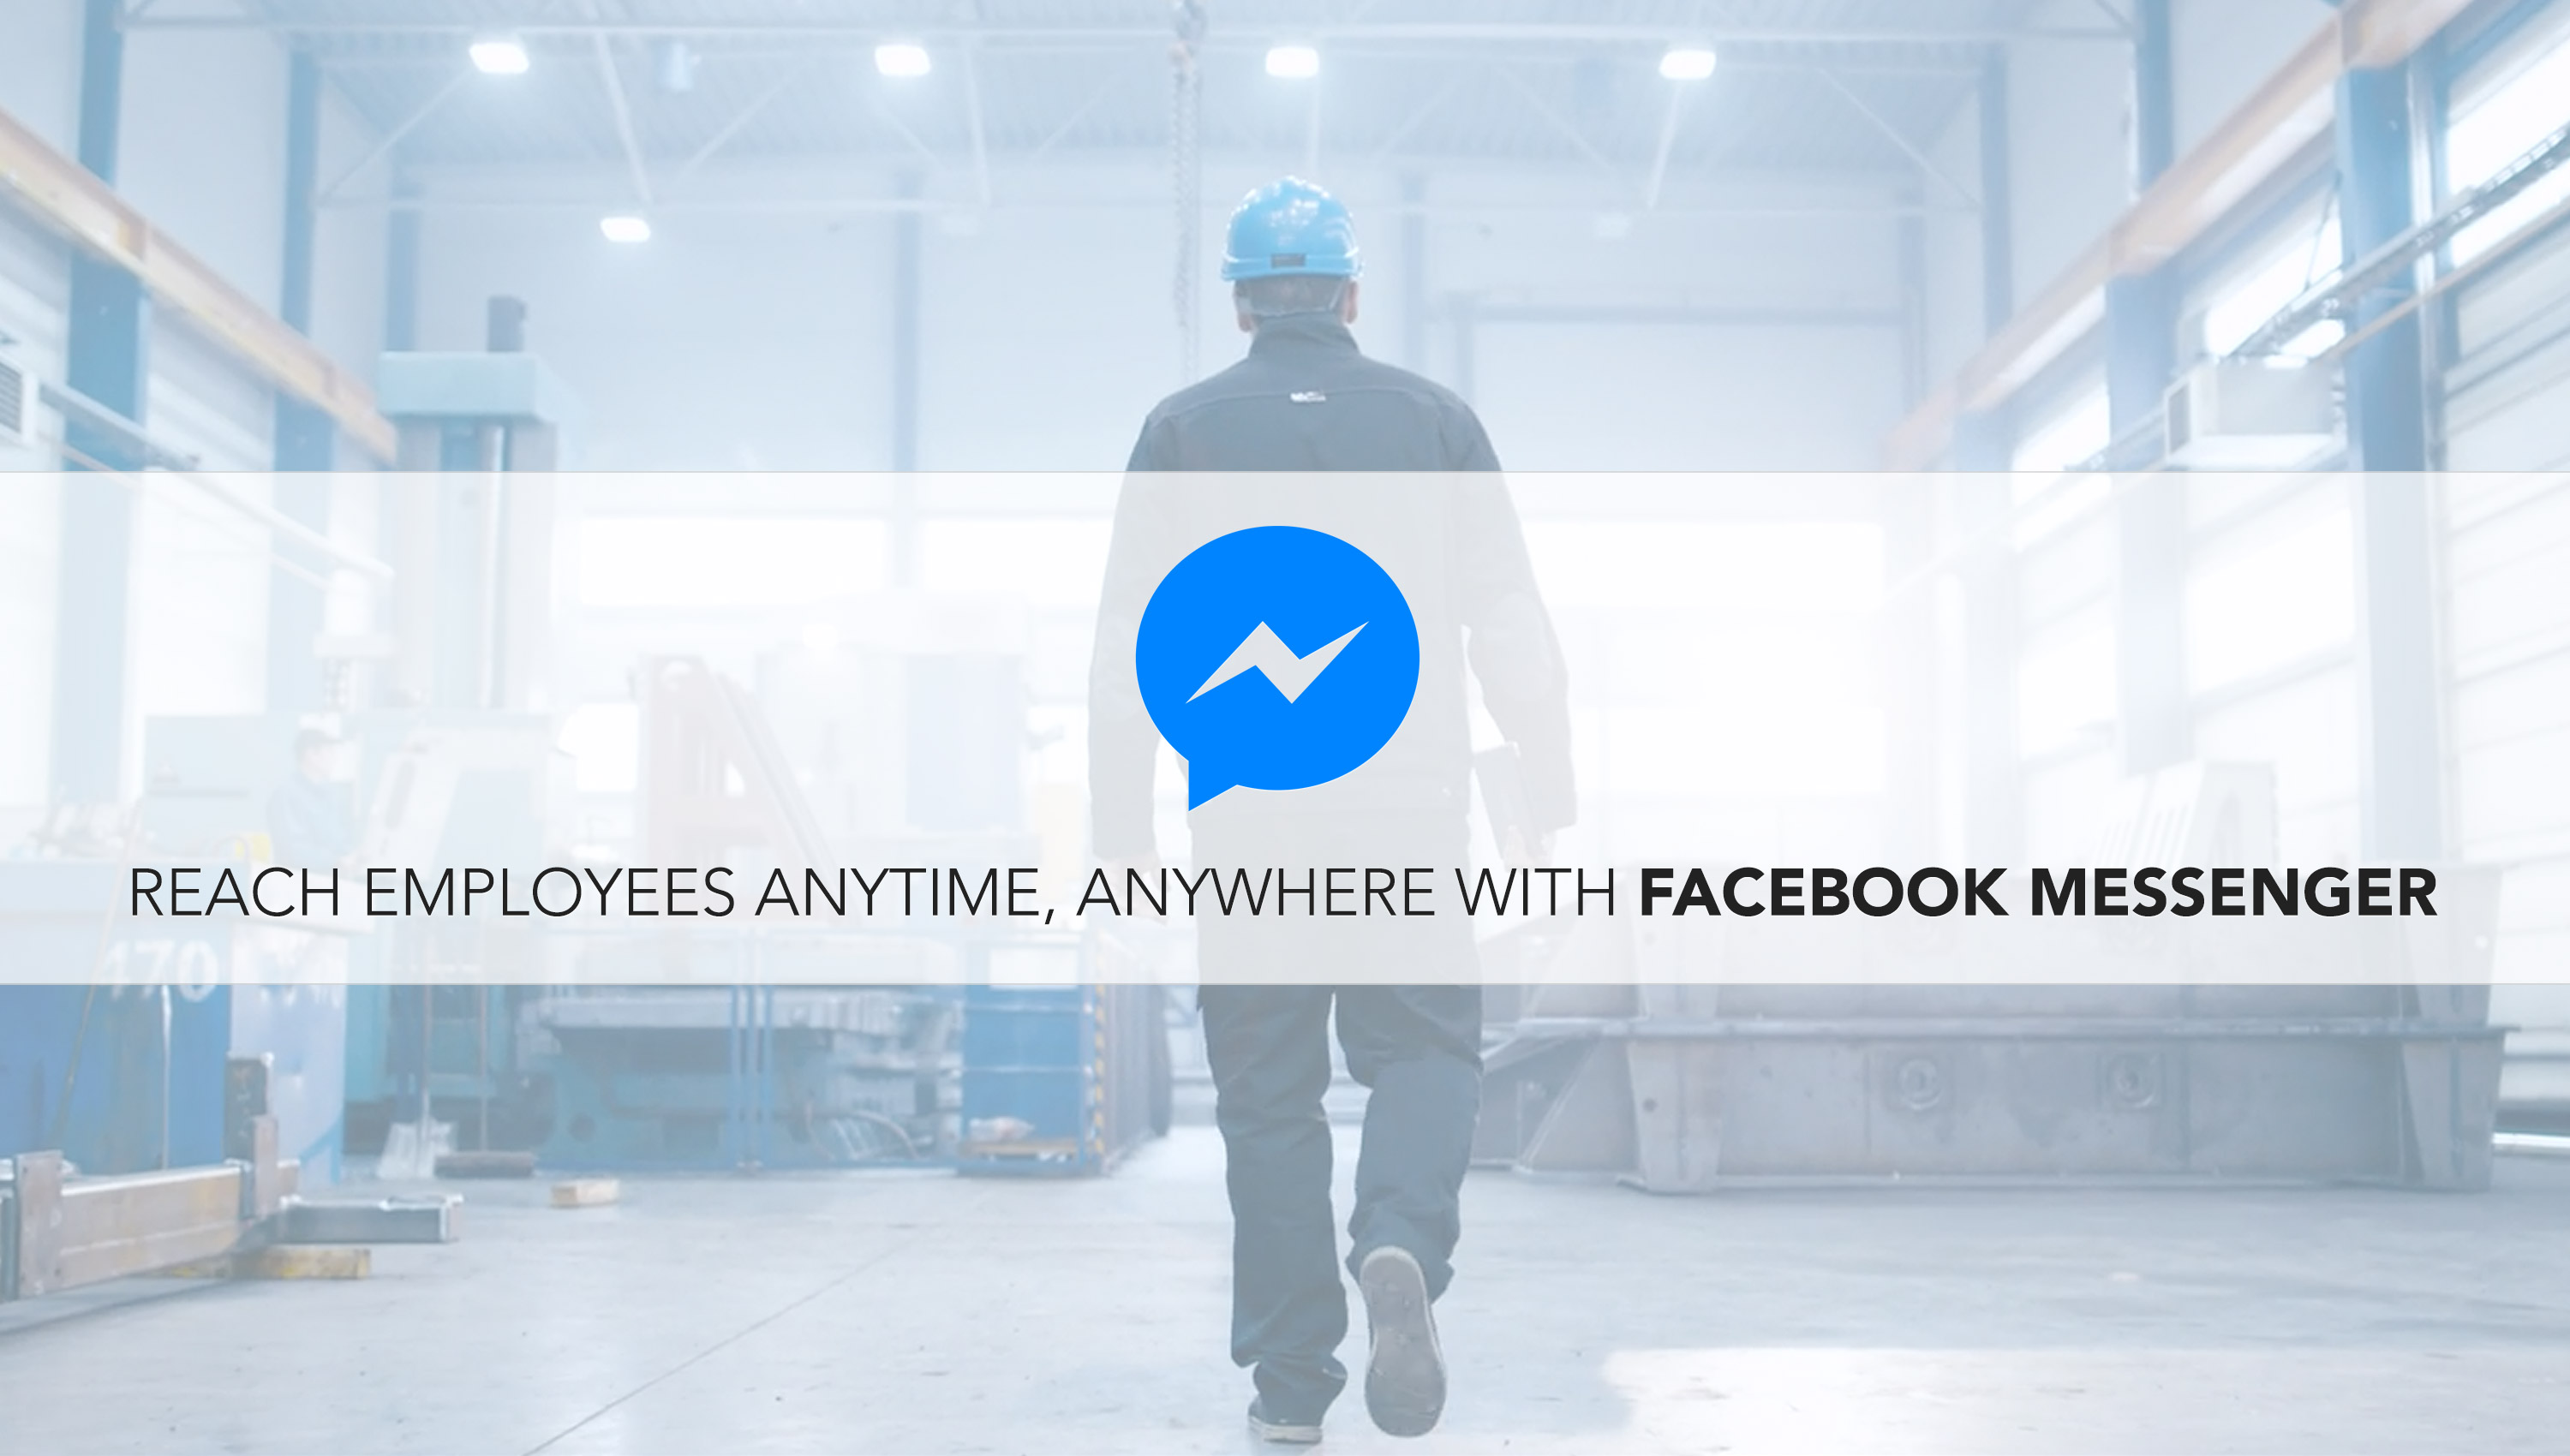 DYNAMIC SIGNAL ENABLES COMPANIES TO REACH BILLIONS OF HOURLY, PART TIME AND REMOTE WORKERS BY CONNECTING WITH FACEBOOK MESSENGER